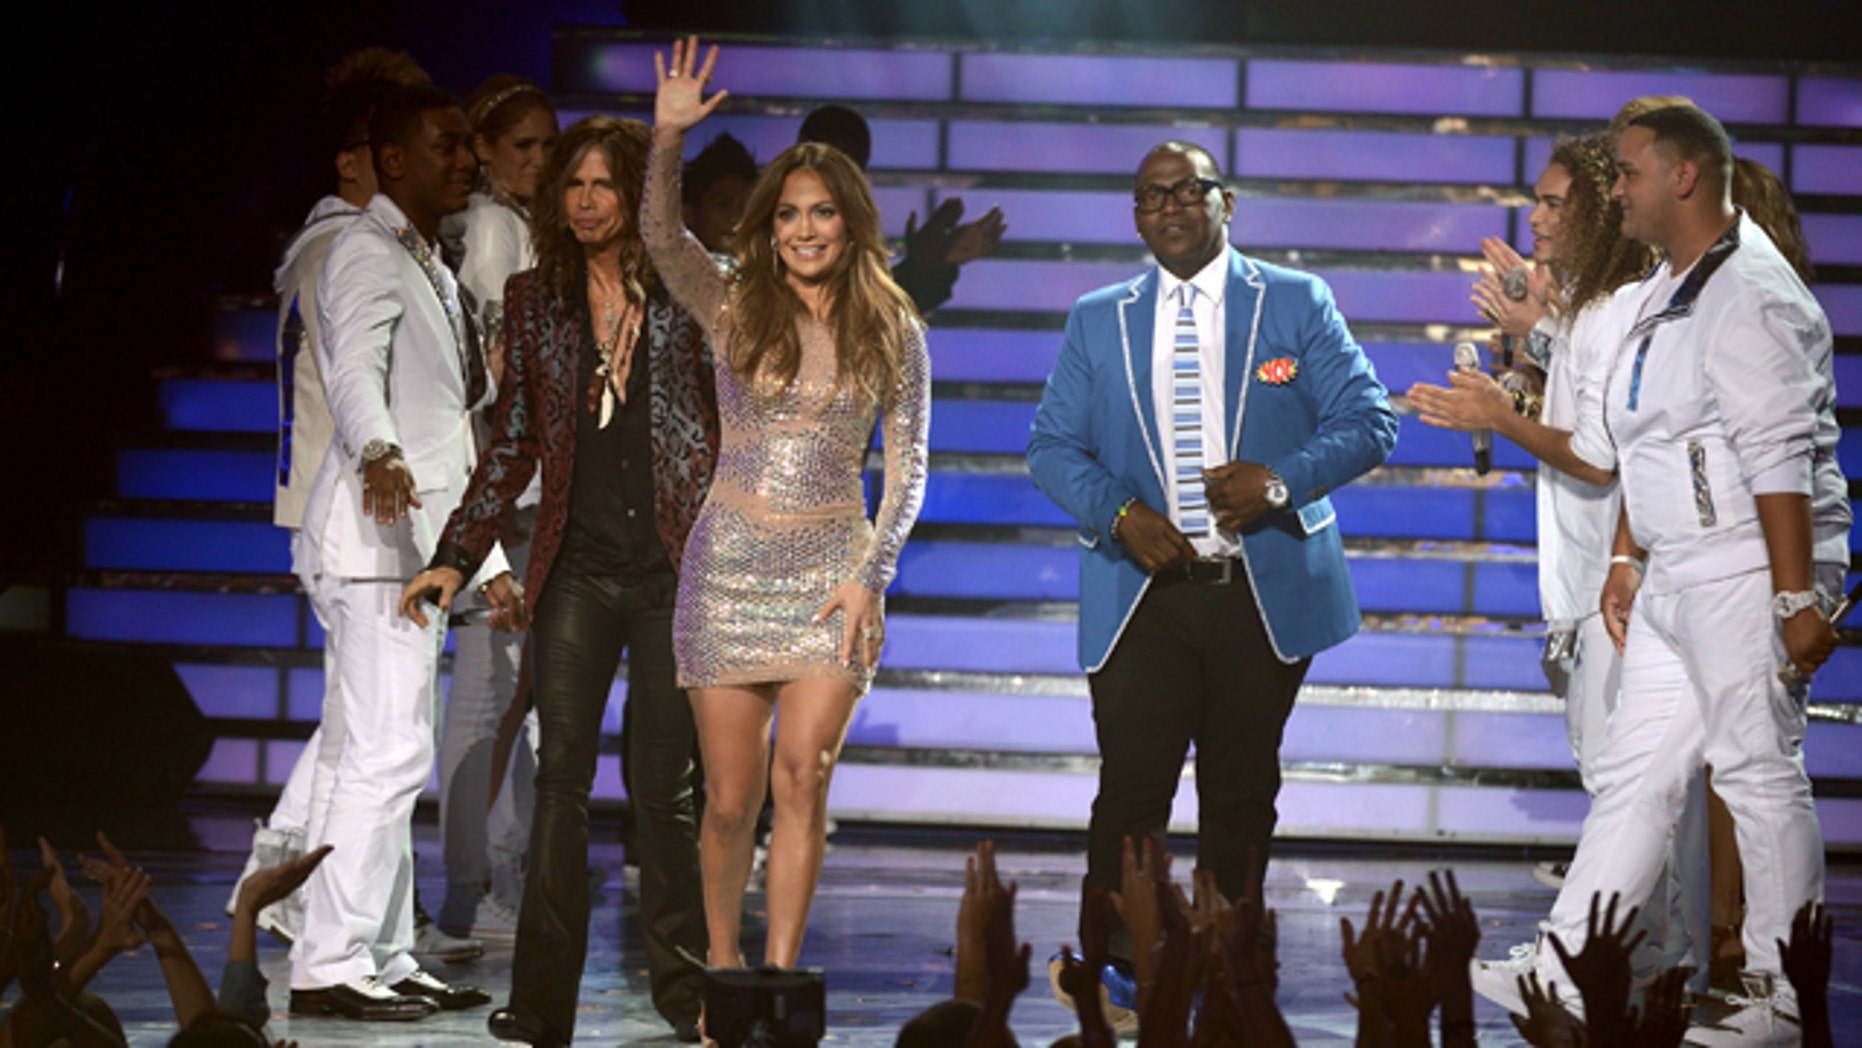 """LOS ANGELES, CA - MAY 23:  Judges Steven Tyler, Jennifer Lopez, and Randy Jackson greet the contestants onstage during Fox's """"American Idol 2012"""" results show at Nokia Theatre L.A. Live on May 23, 2012 in Los Angeles, California.  (Photo by Mark Davis/Getty Images)"""